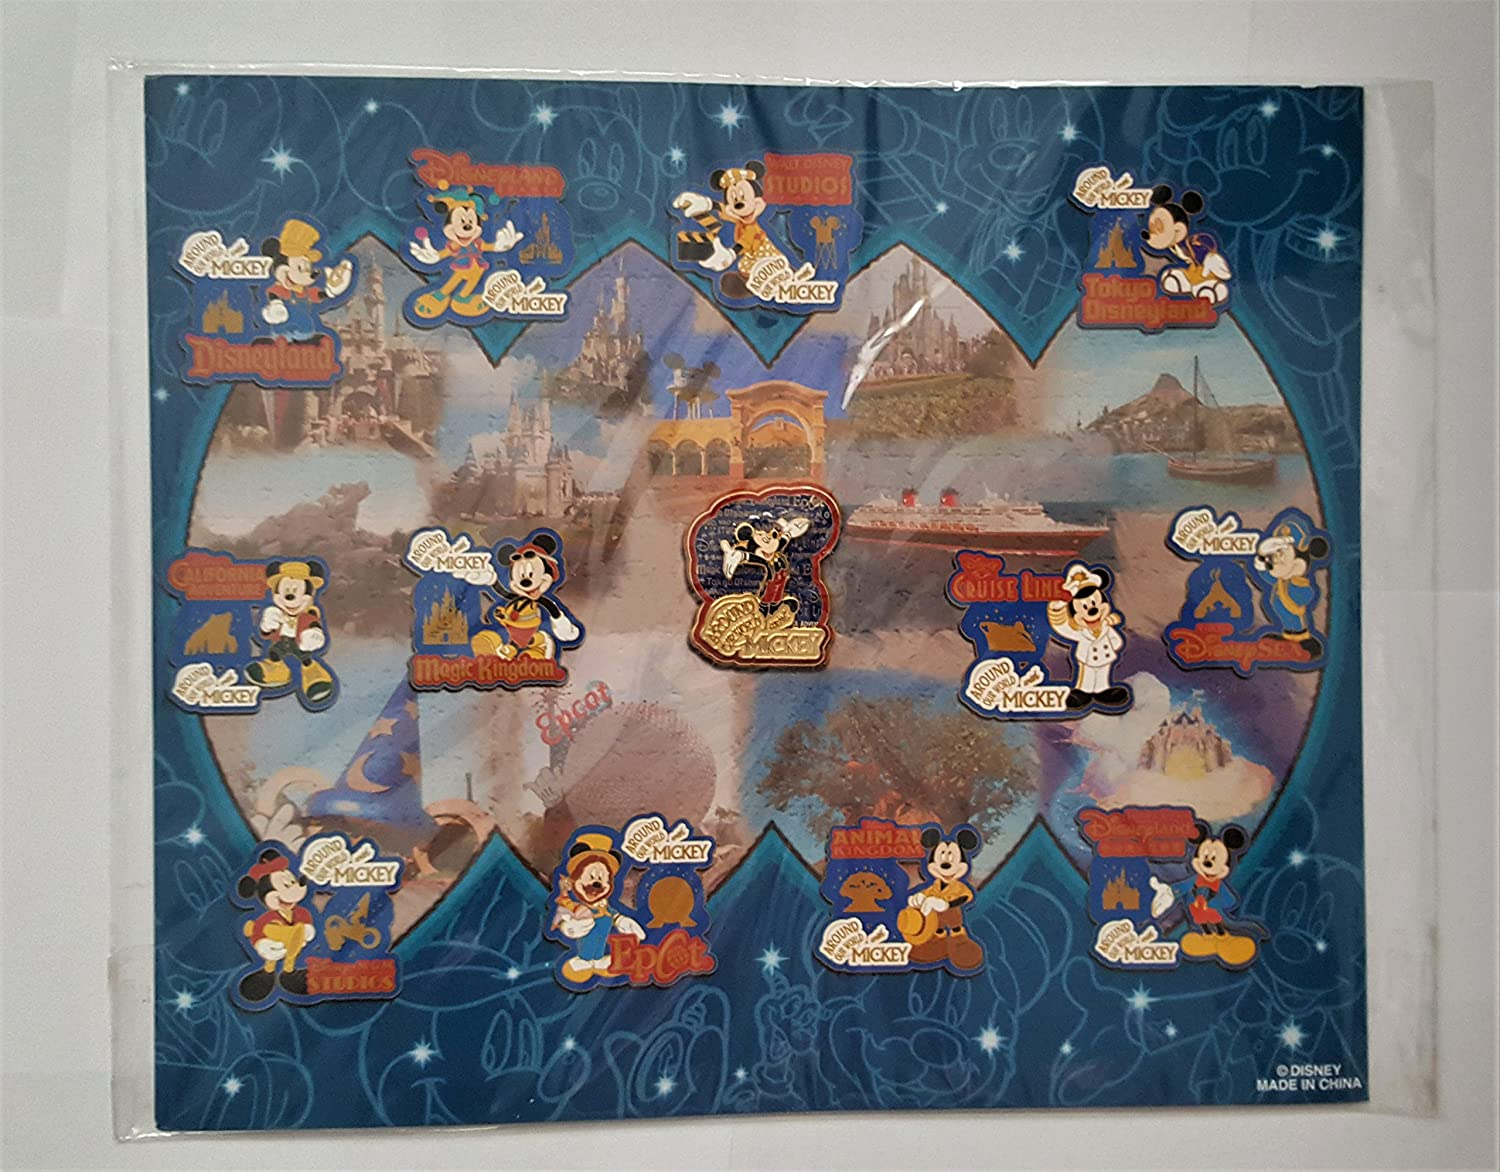 Around Our World With Mickey - Mickey Mouse Pin & Artist Illustration Background with Completer Pin, Pin Pic # 41056, 41057